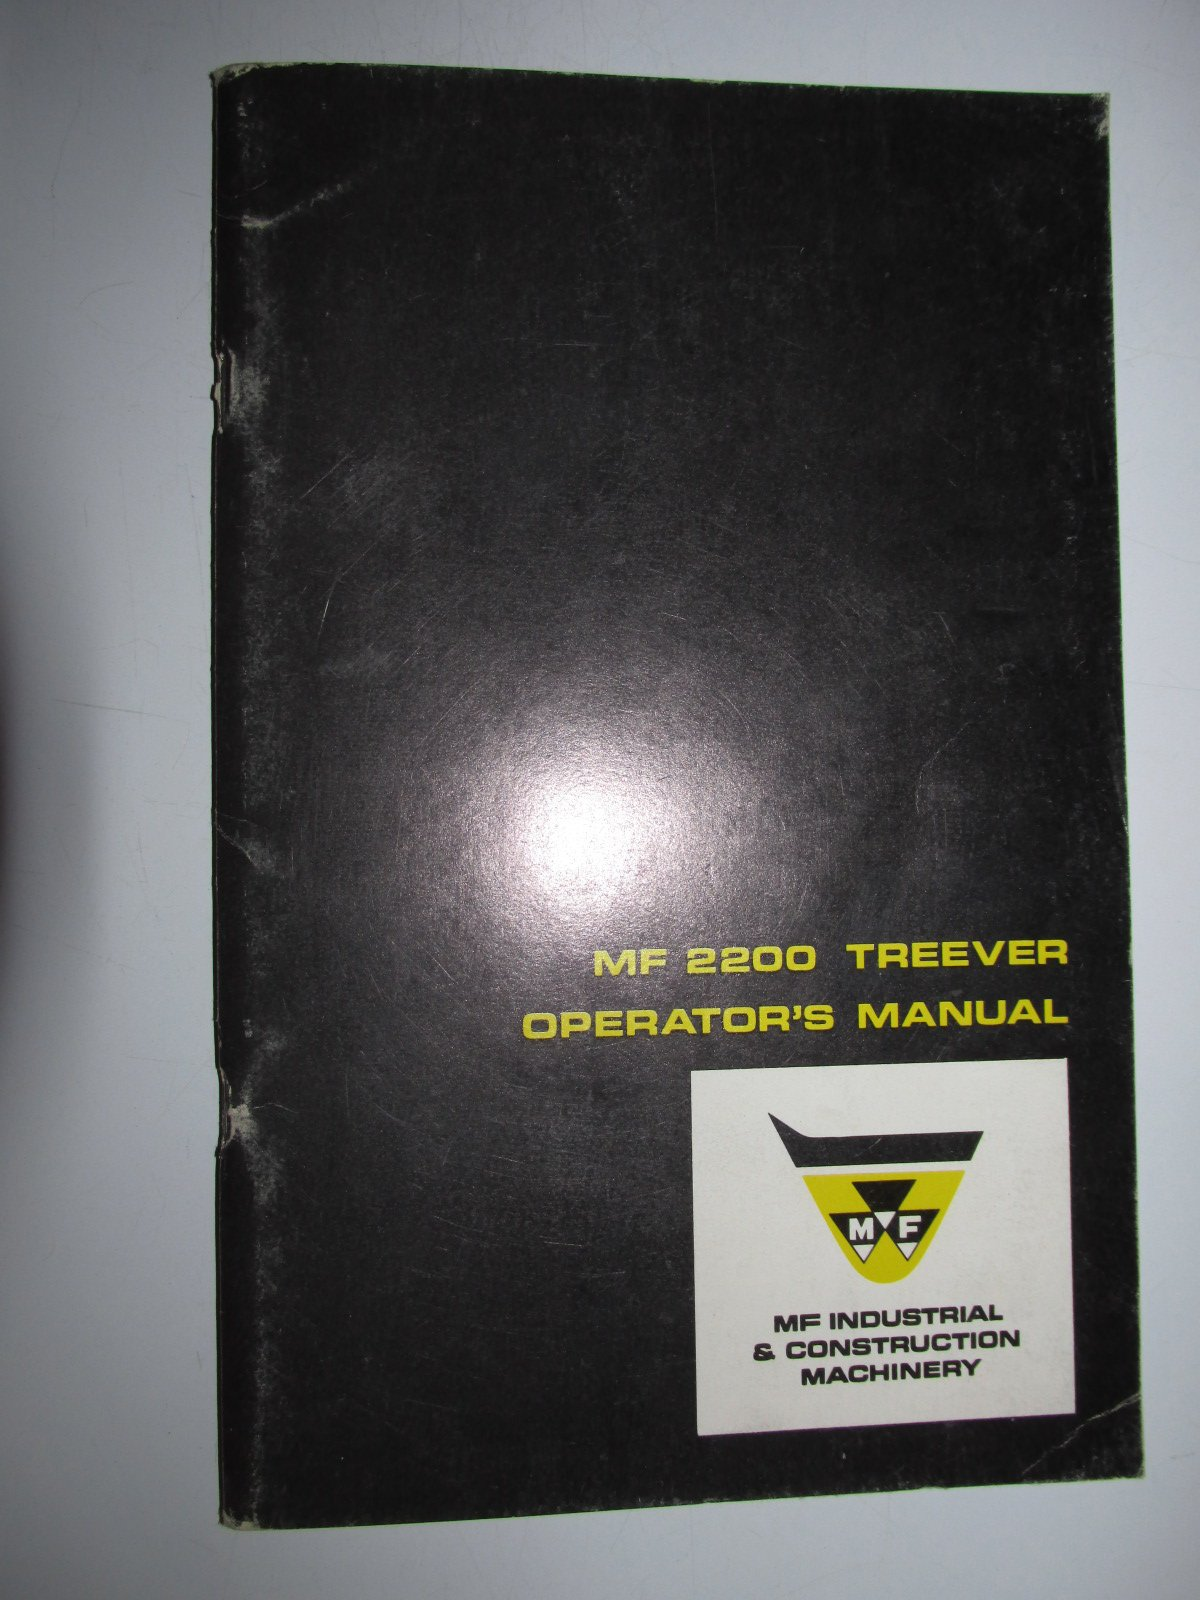 Massey Ferguson MF 2200 Treever Log Skidder Operators Owners Manual Book  Original 690 827 M2: Massey Ferguson & AGCO: Amazon.com: Books